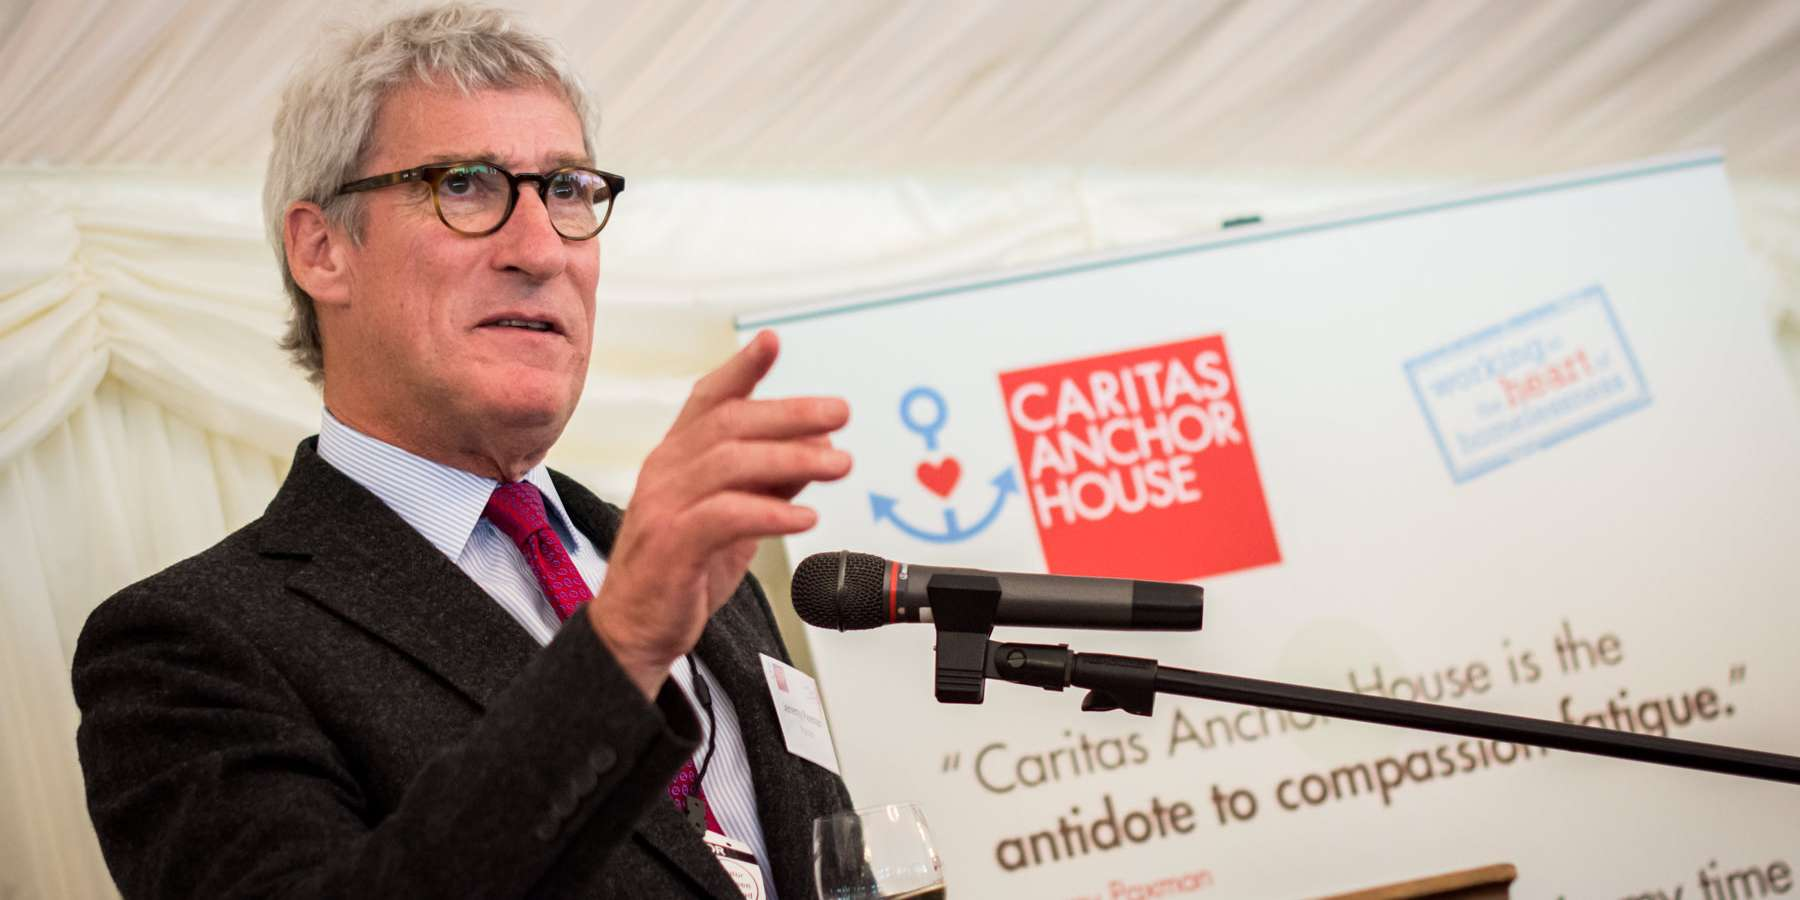 House Of Lords Event Photography, Jeremy Paxman